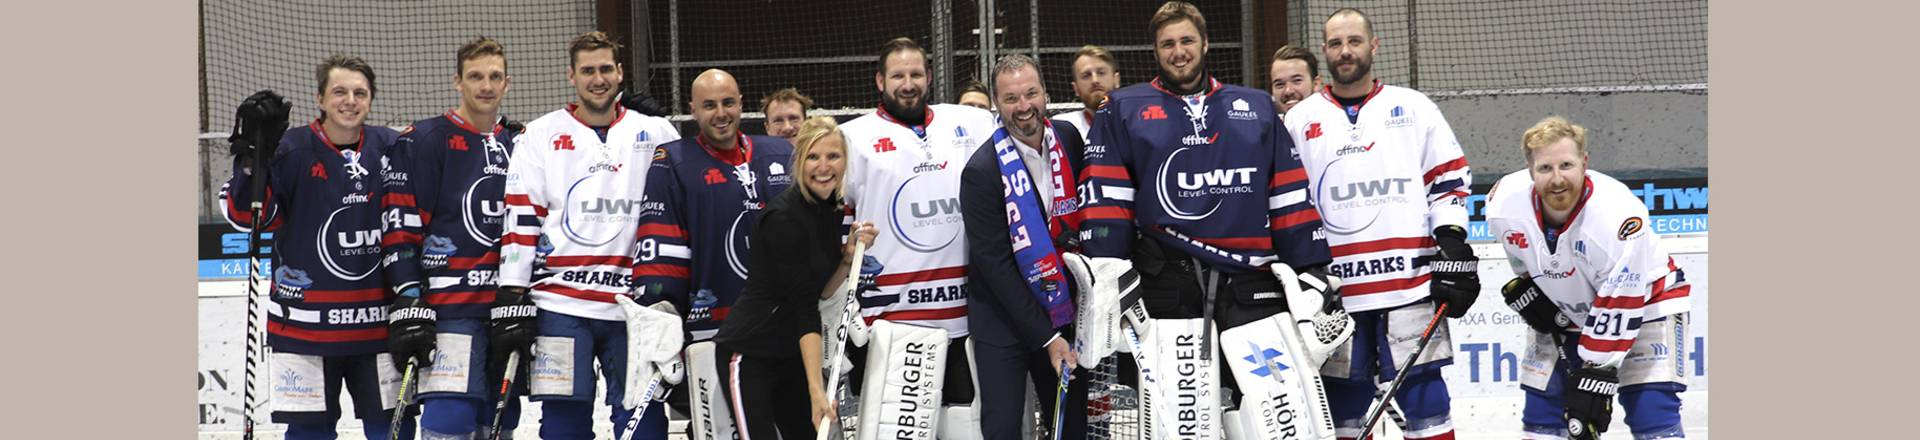 UWT sponsort den ESC Eishockey Club in Kempten